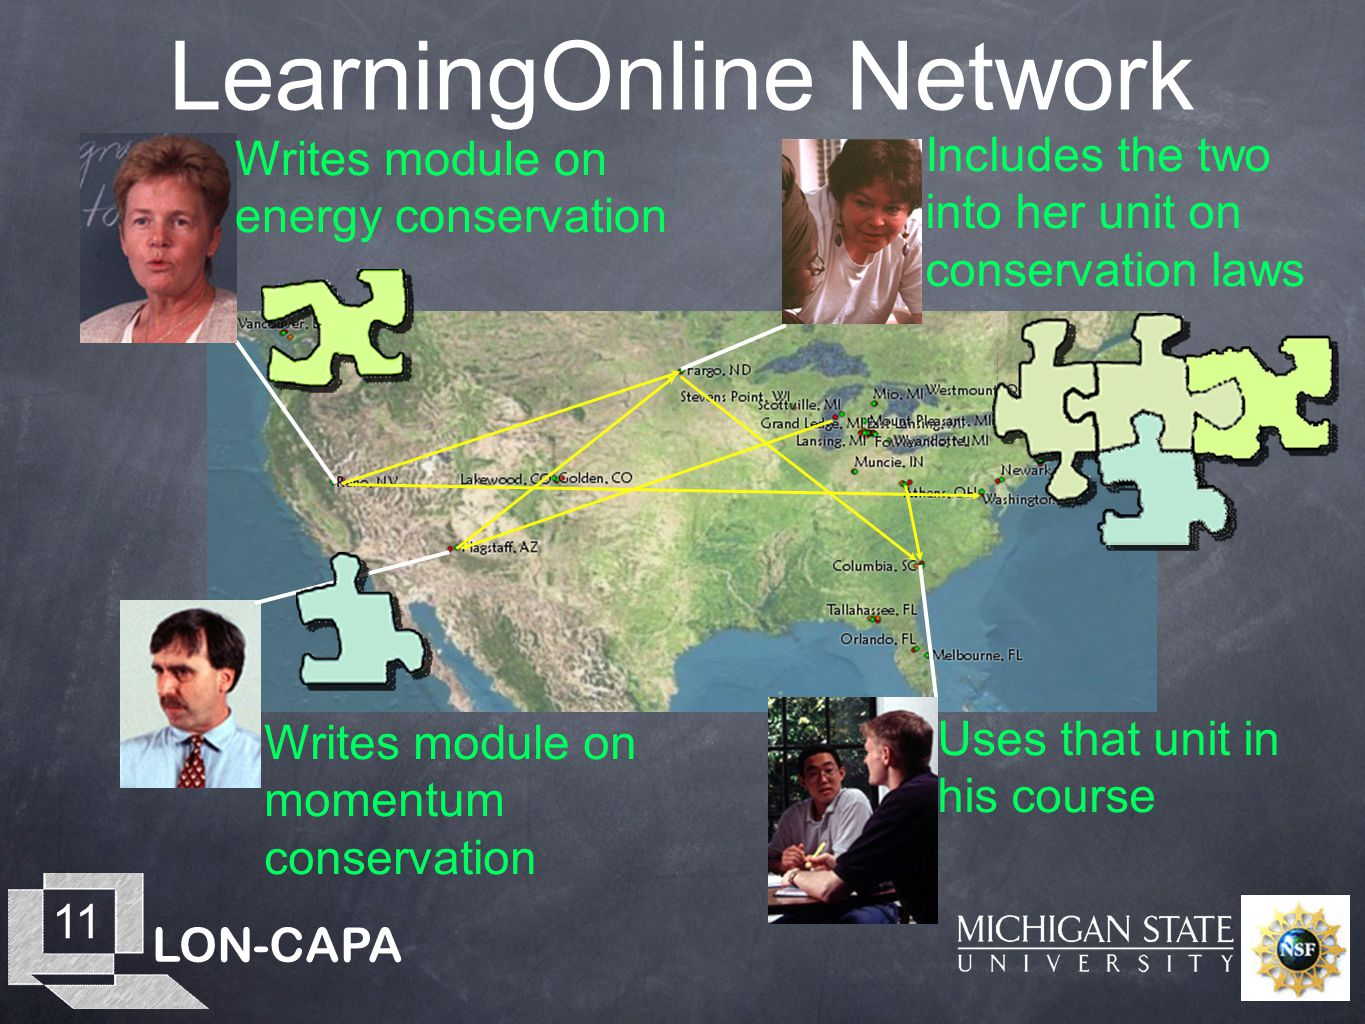 LON-CAPA 11 LearningOnline Network Writes module on energy conservation Writes module on momentum conservation Includes the two into her unit on conse